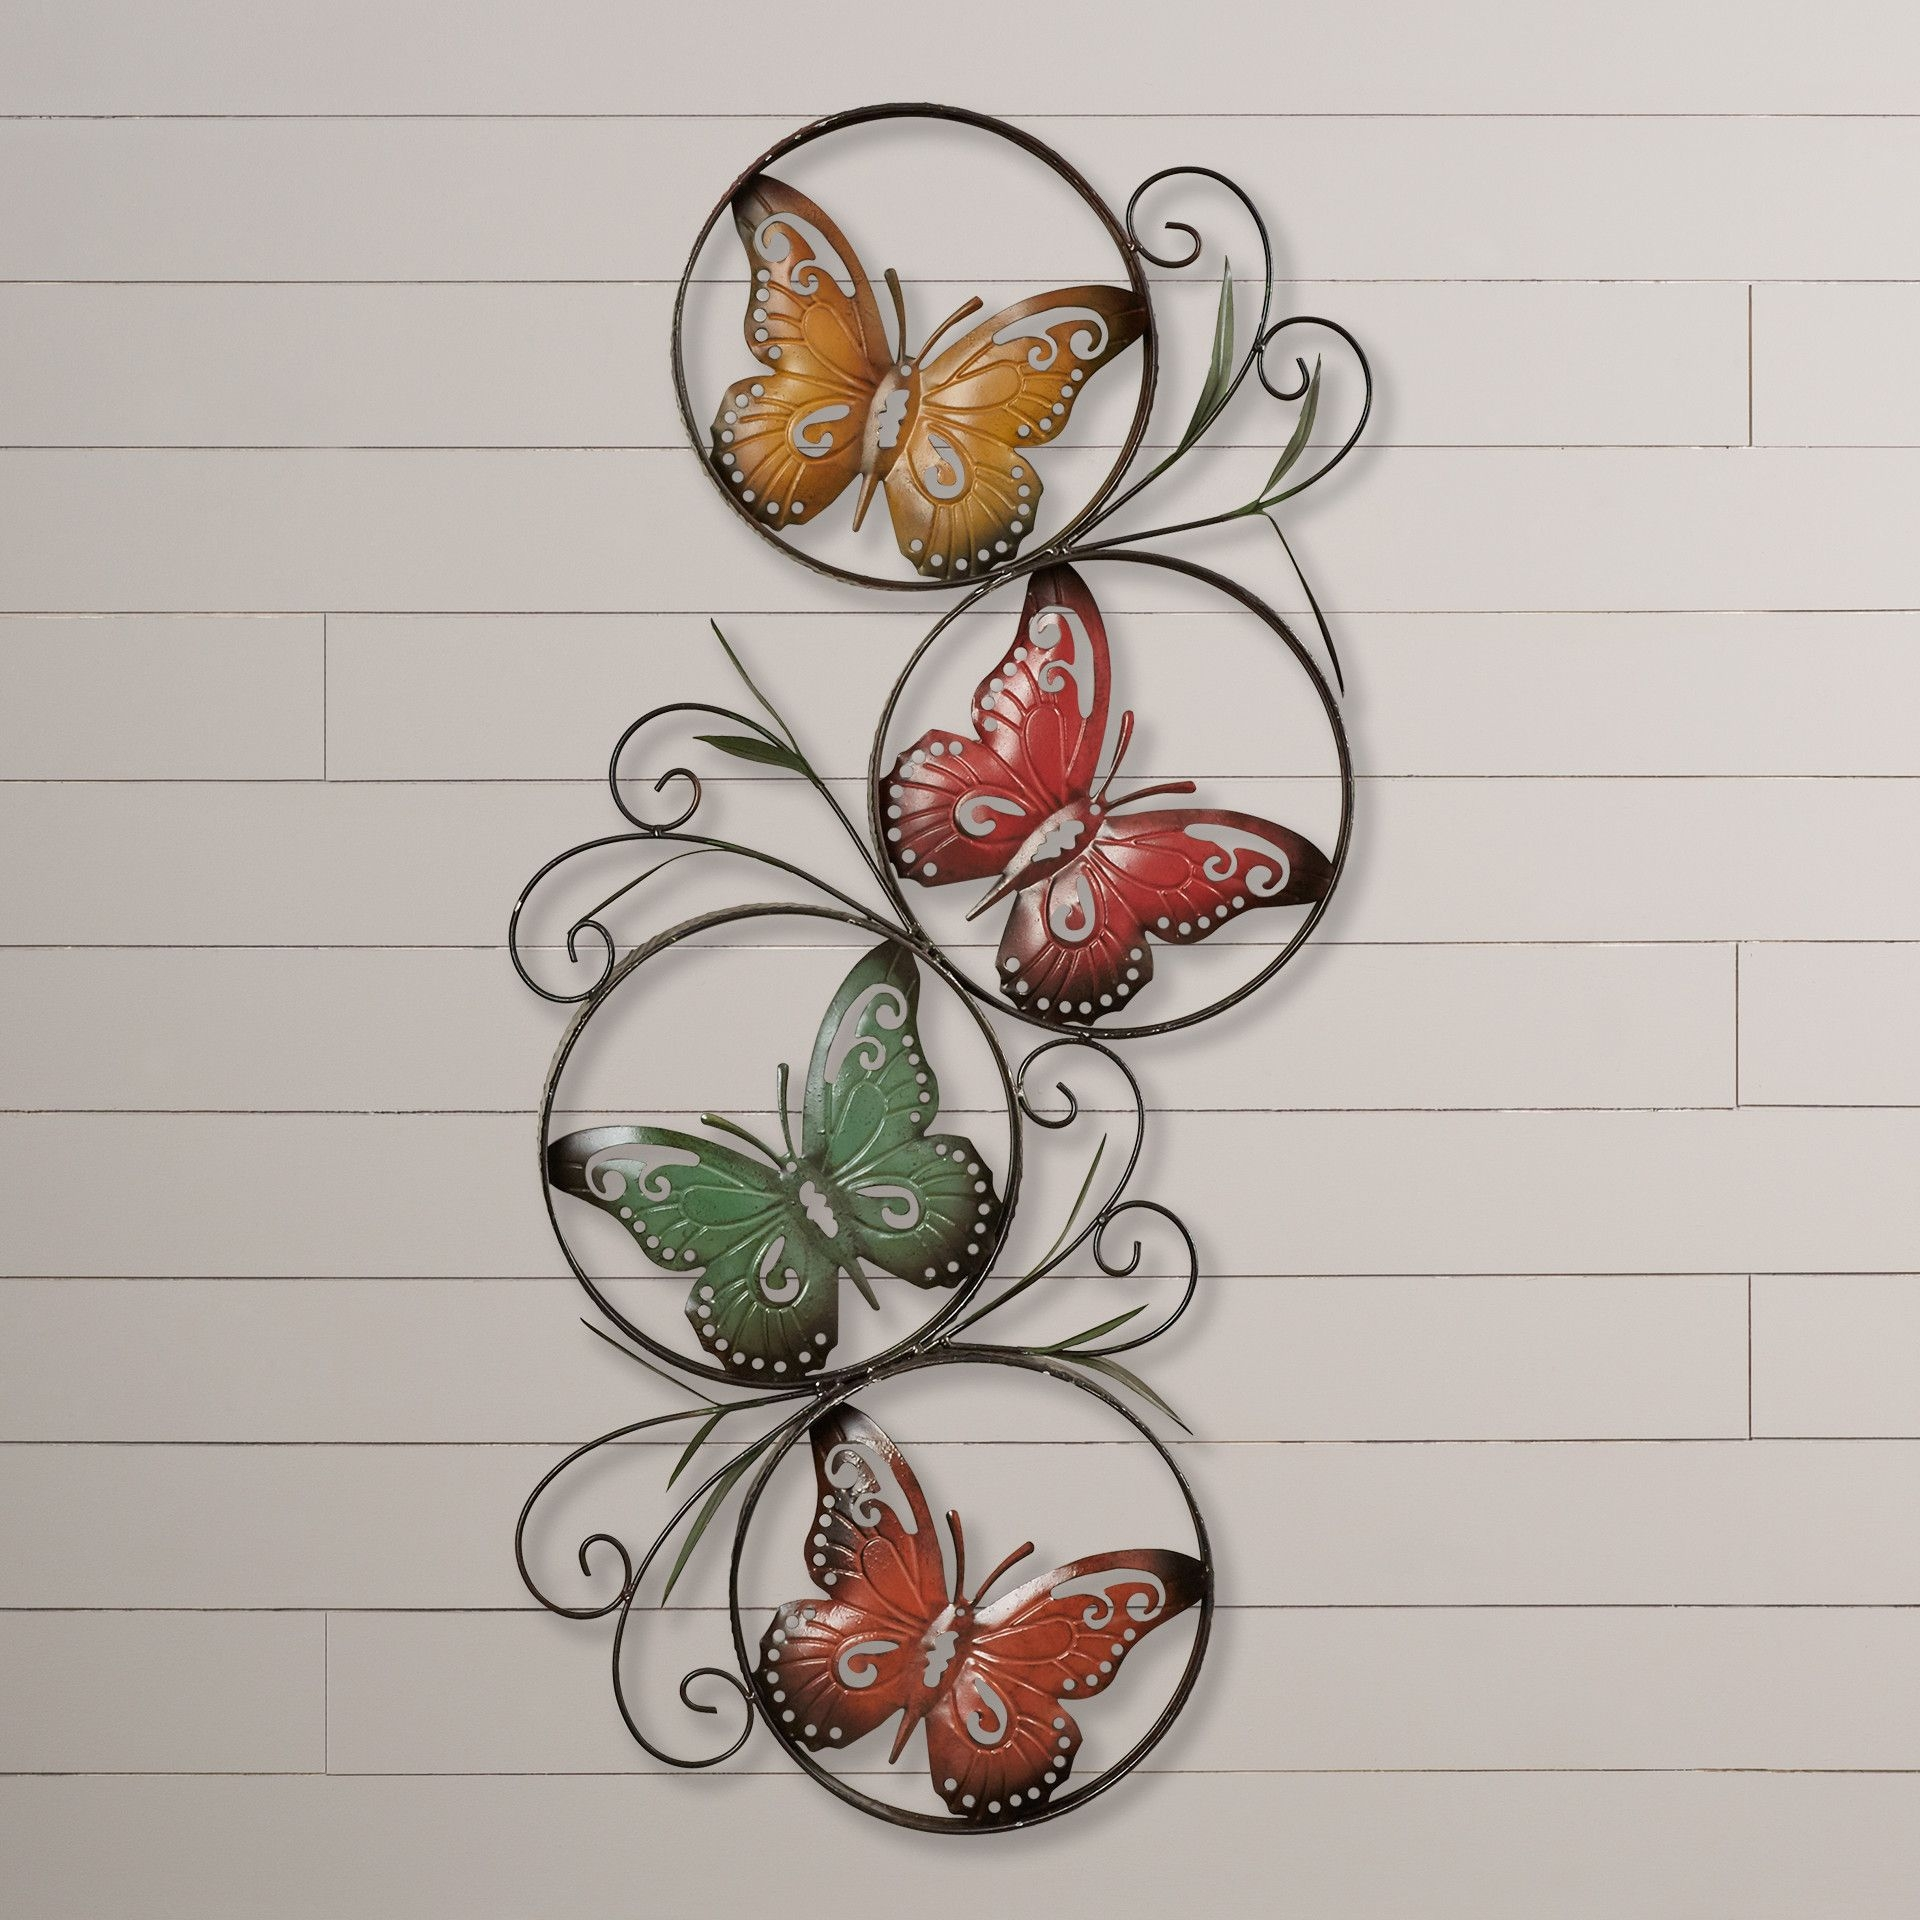 Metal Butterfly Wall Decor You'll Love in 2021 - VisualHunt